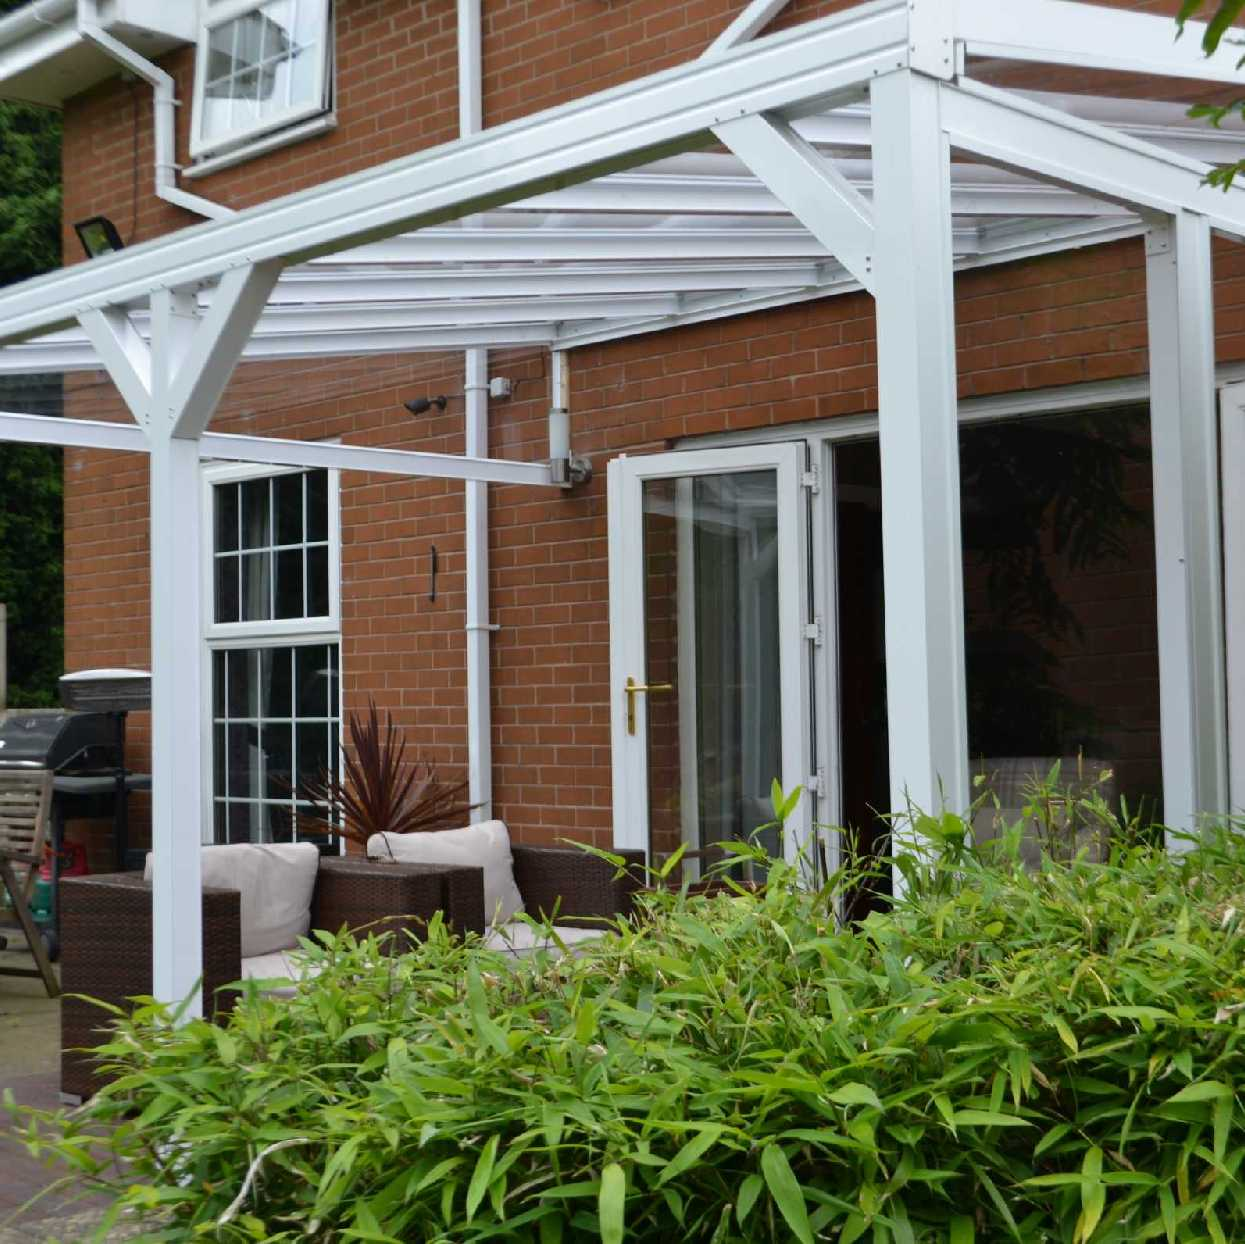 Omega Smart Lean-To Canopy UNGLAZED for 6mm Glazing - 5.6m (W) x 2.5m (P), (3) Supporting Posts from Omega Build